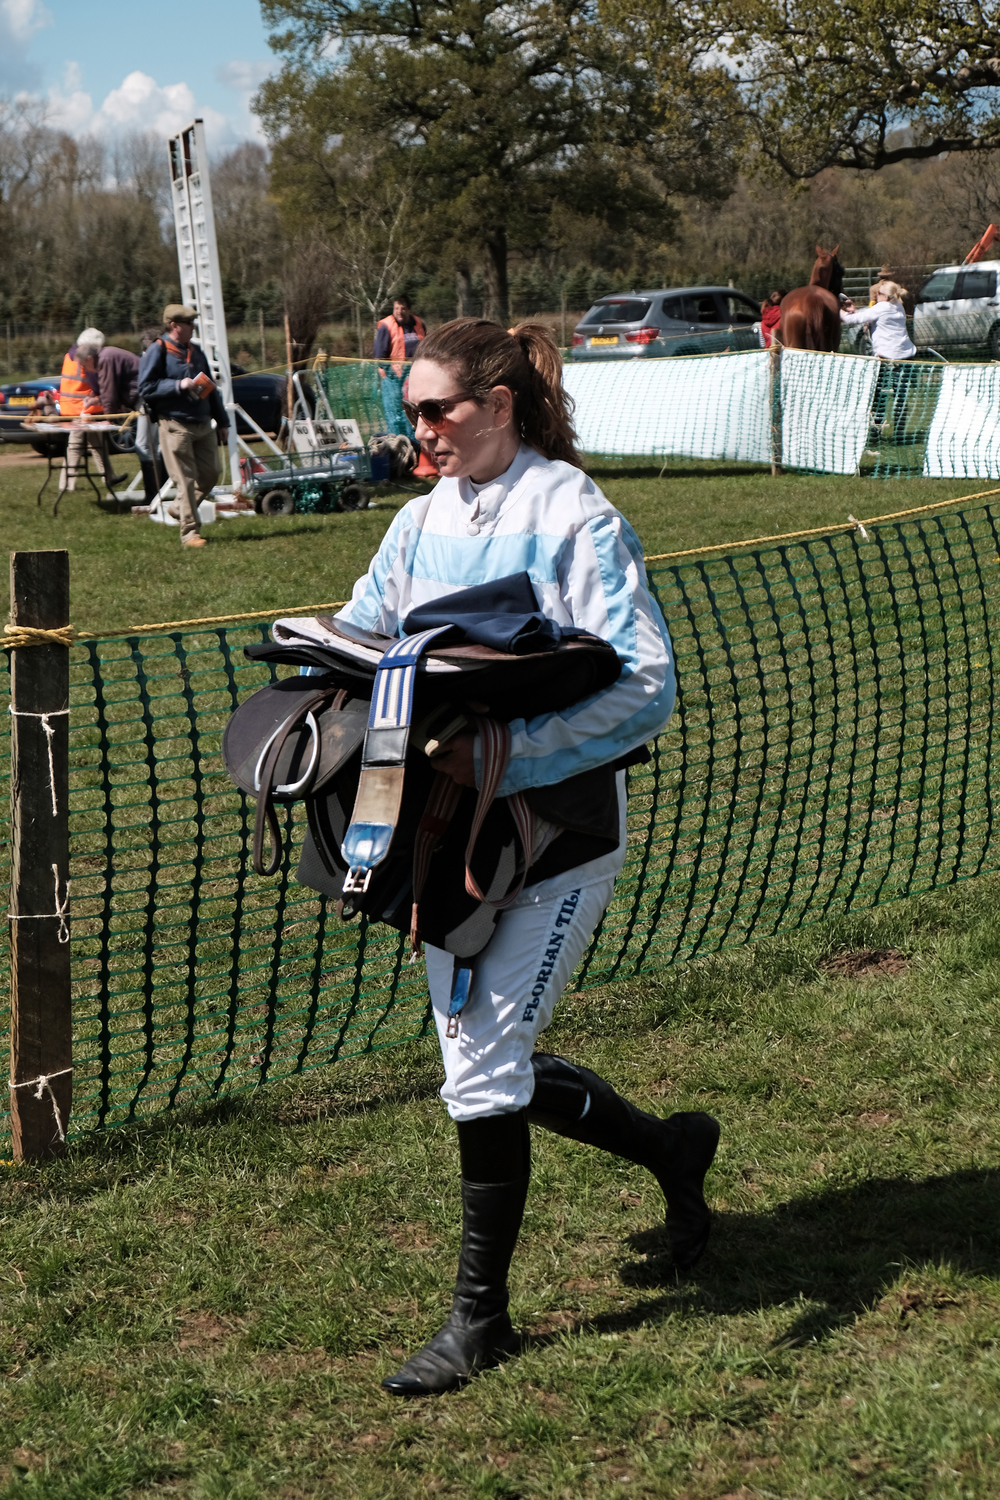 Peper Harow P2P April 2016 XPro2 02 Jockey.jpg